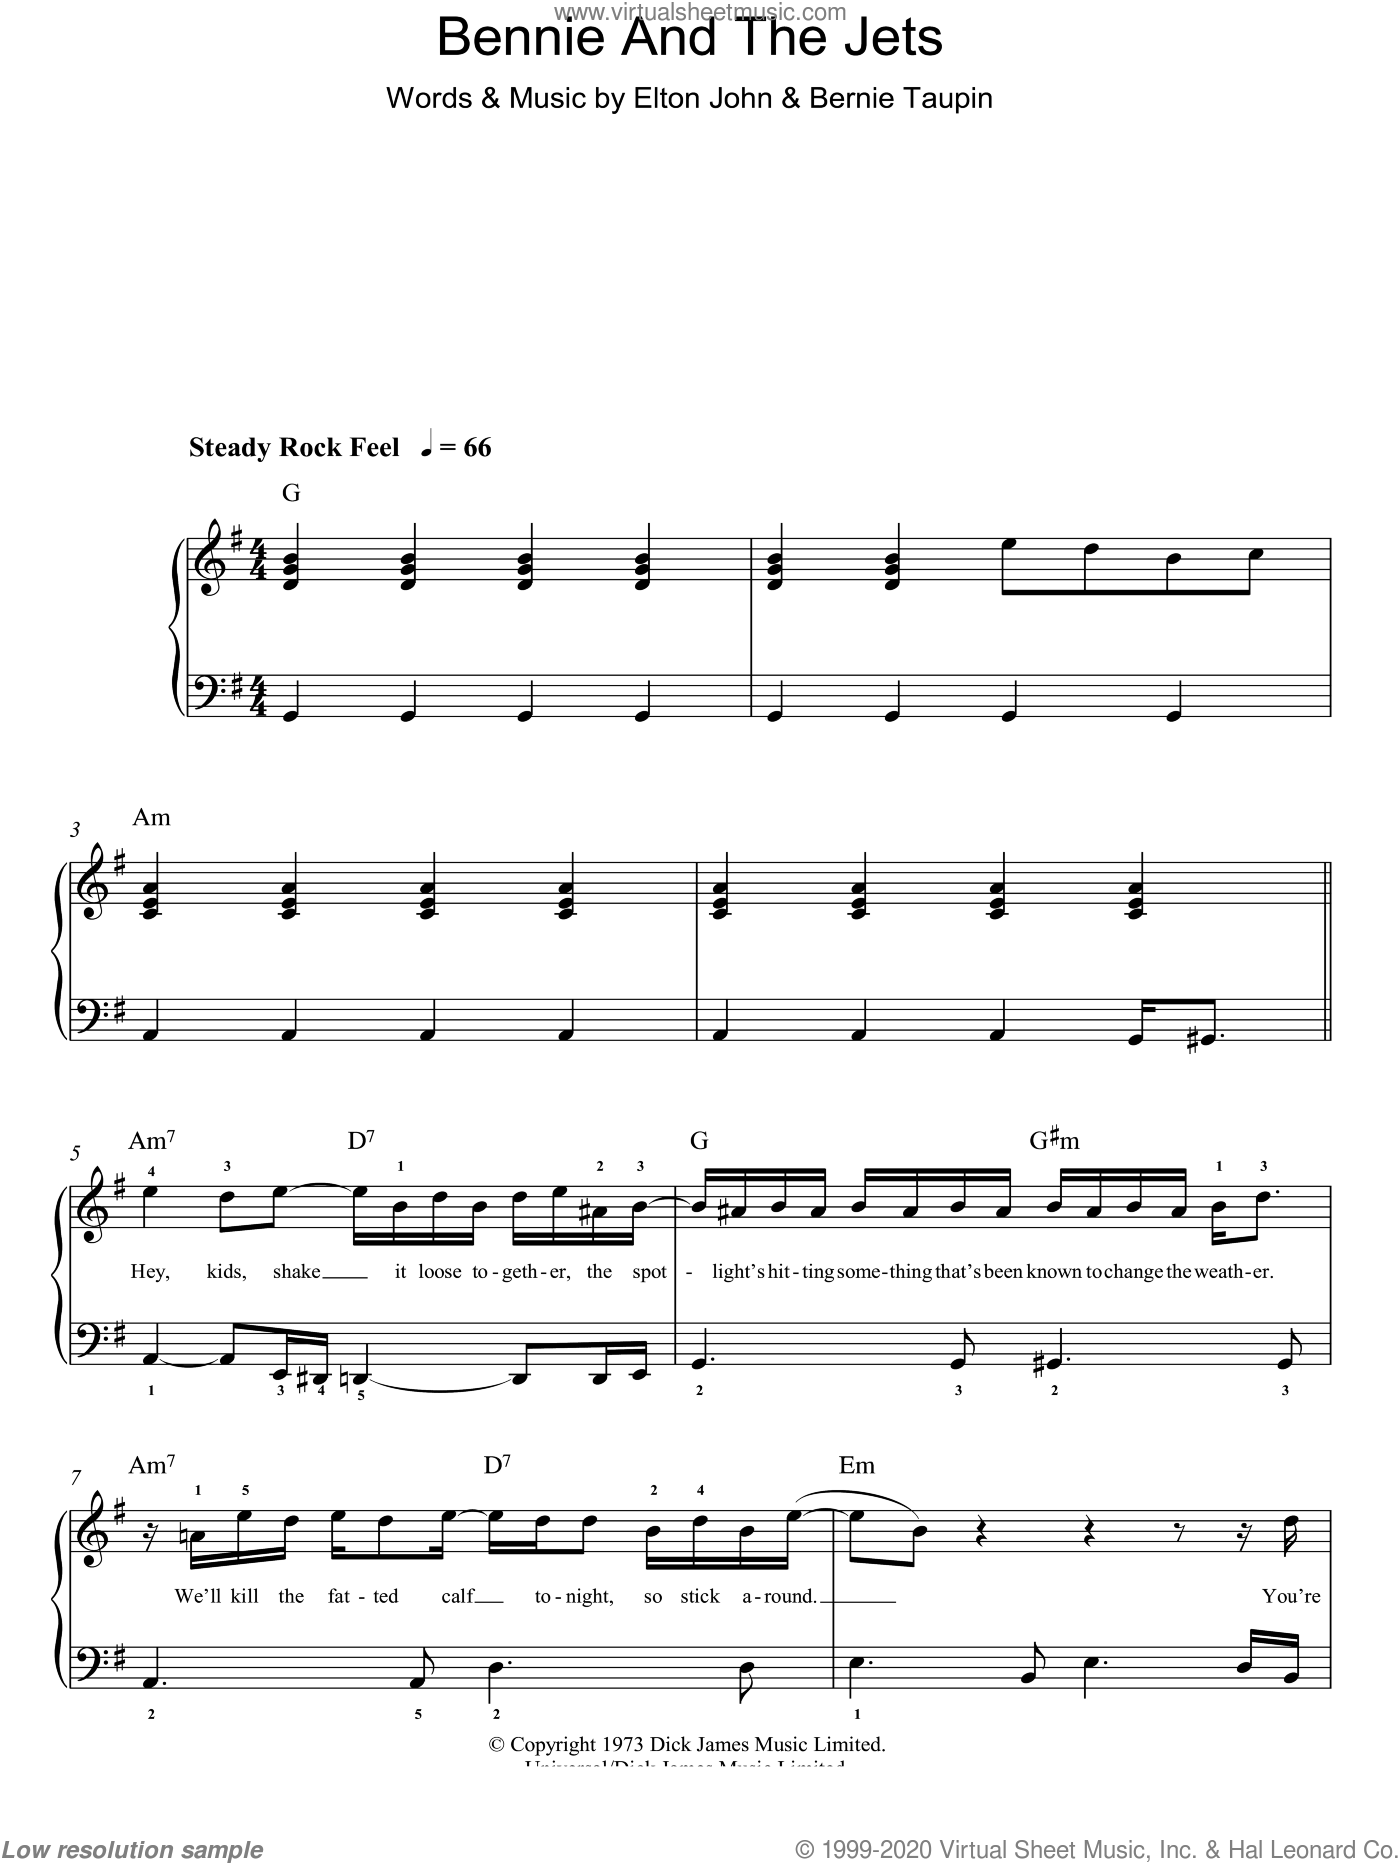 Bennie And The Jets sheet music for piano solo by Elton John and Bernie Taupin, easy skill level